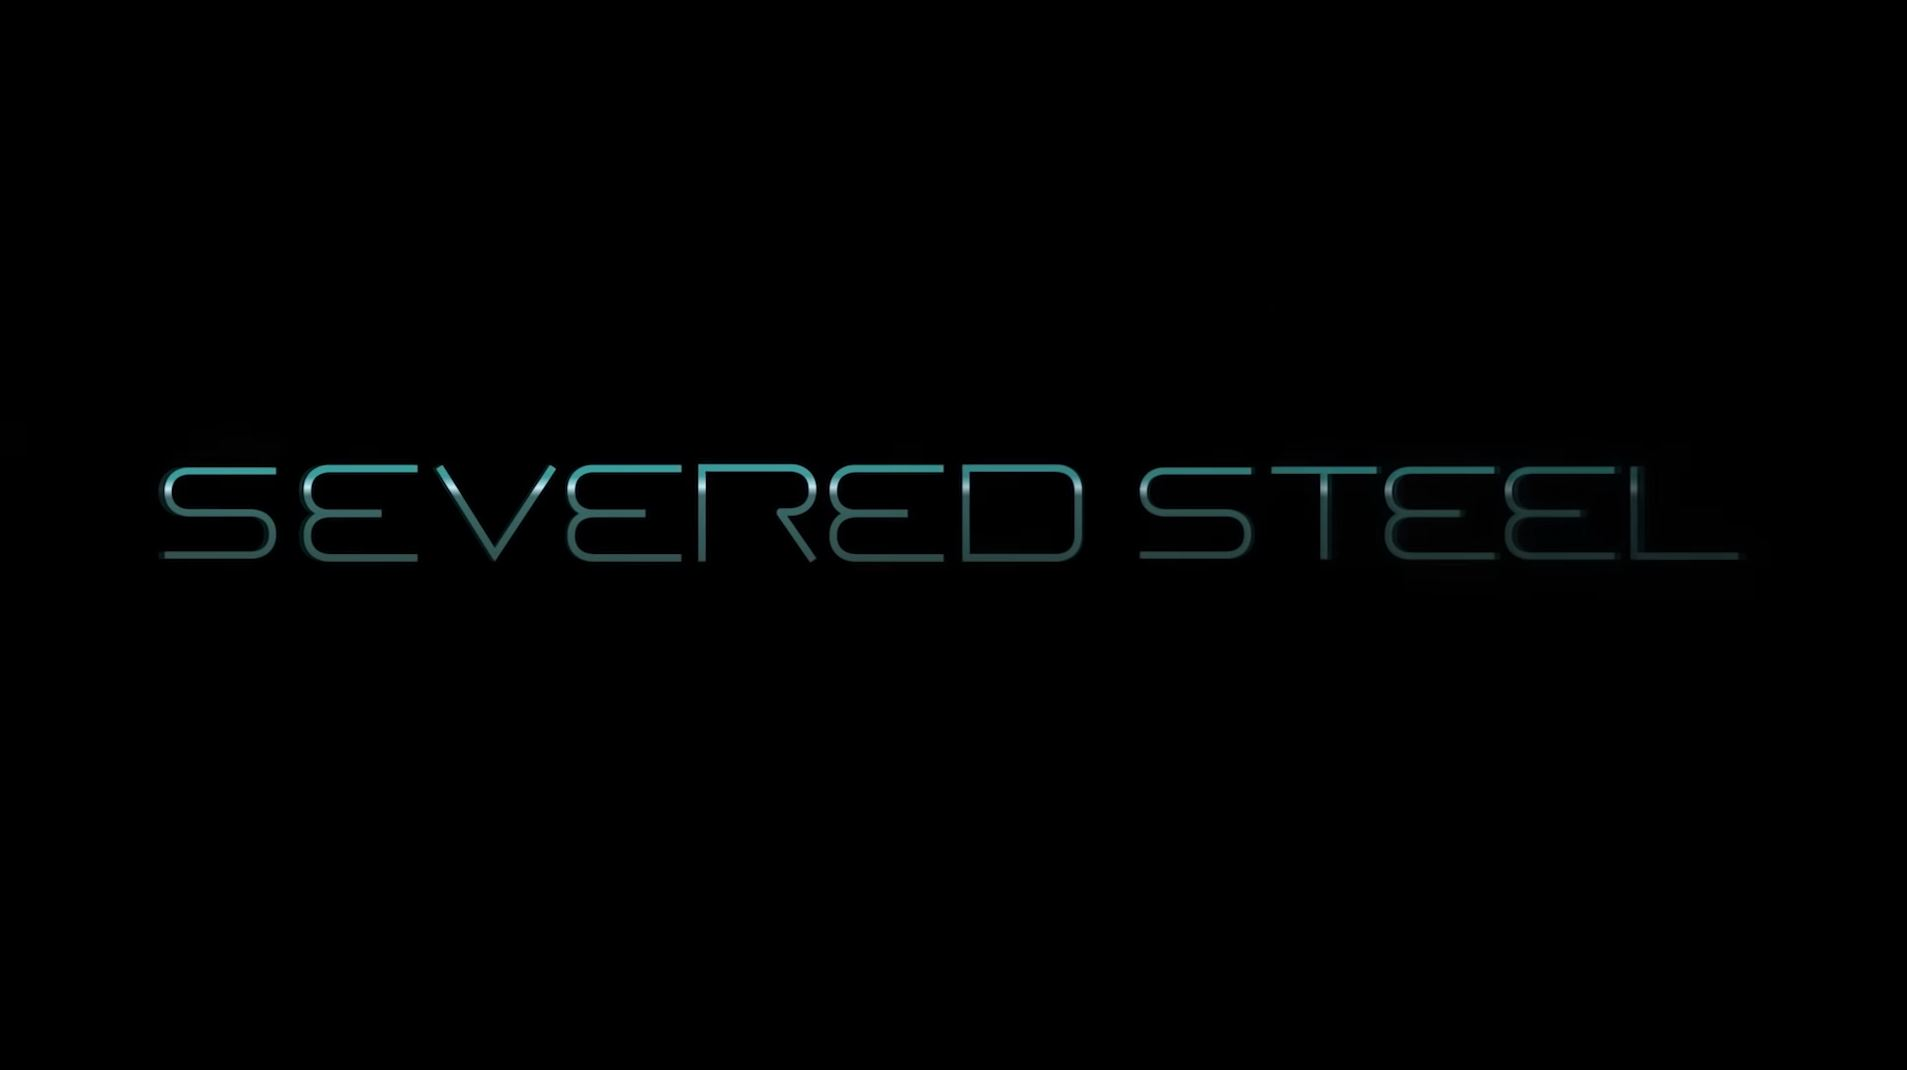 severed-steel-ps4-news-reviews-videos